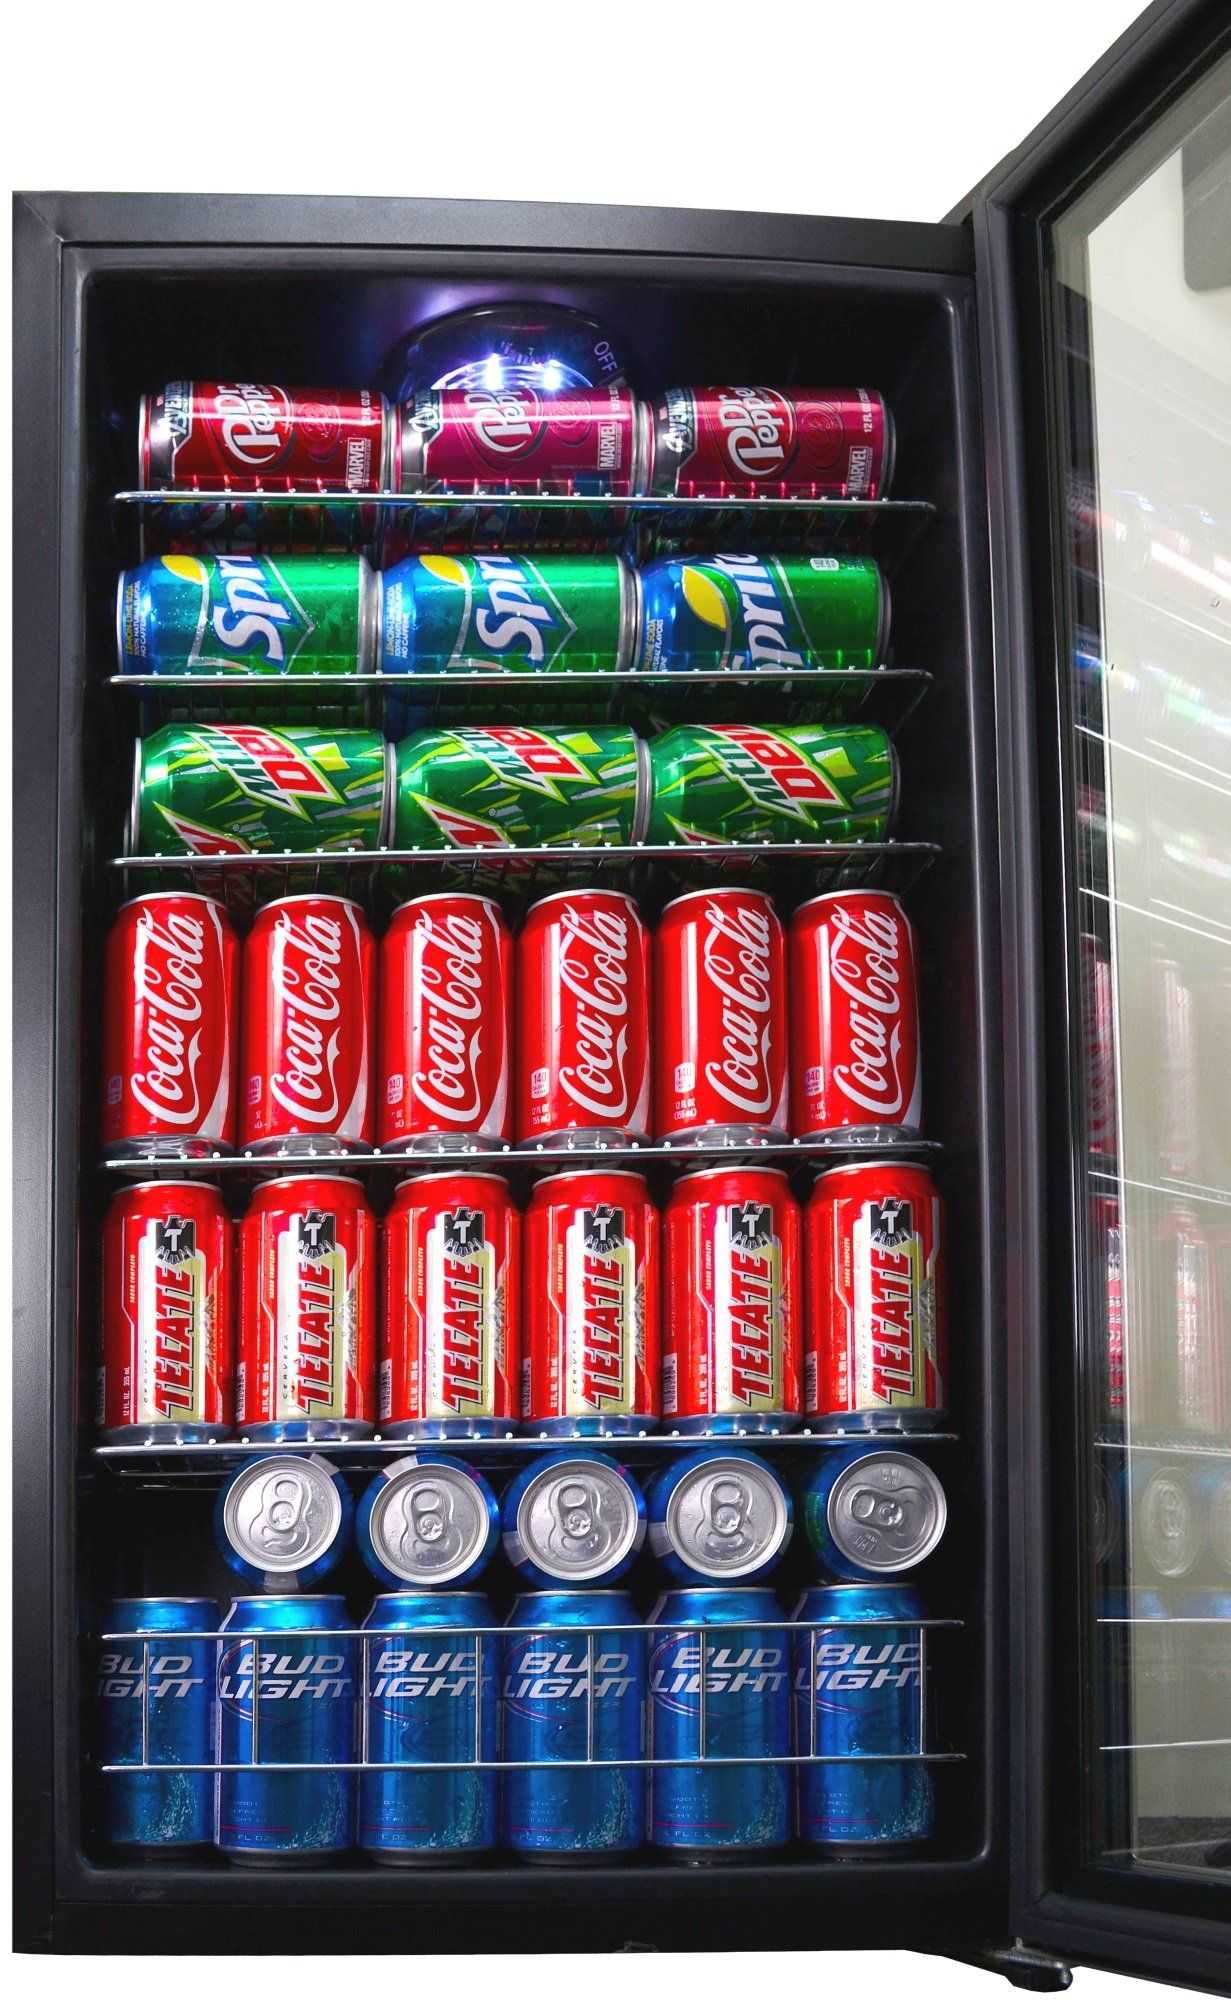 Newair Beverage Cooler And Refrigerator Mini Fridge With Glass Door Perfect For Soda Beer Or Wine 126can Cap Beverage Cooler Wine Gift Baskets Game Room Family